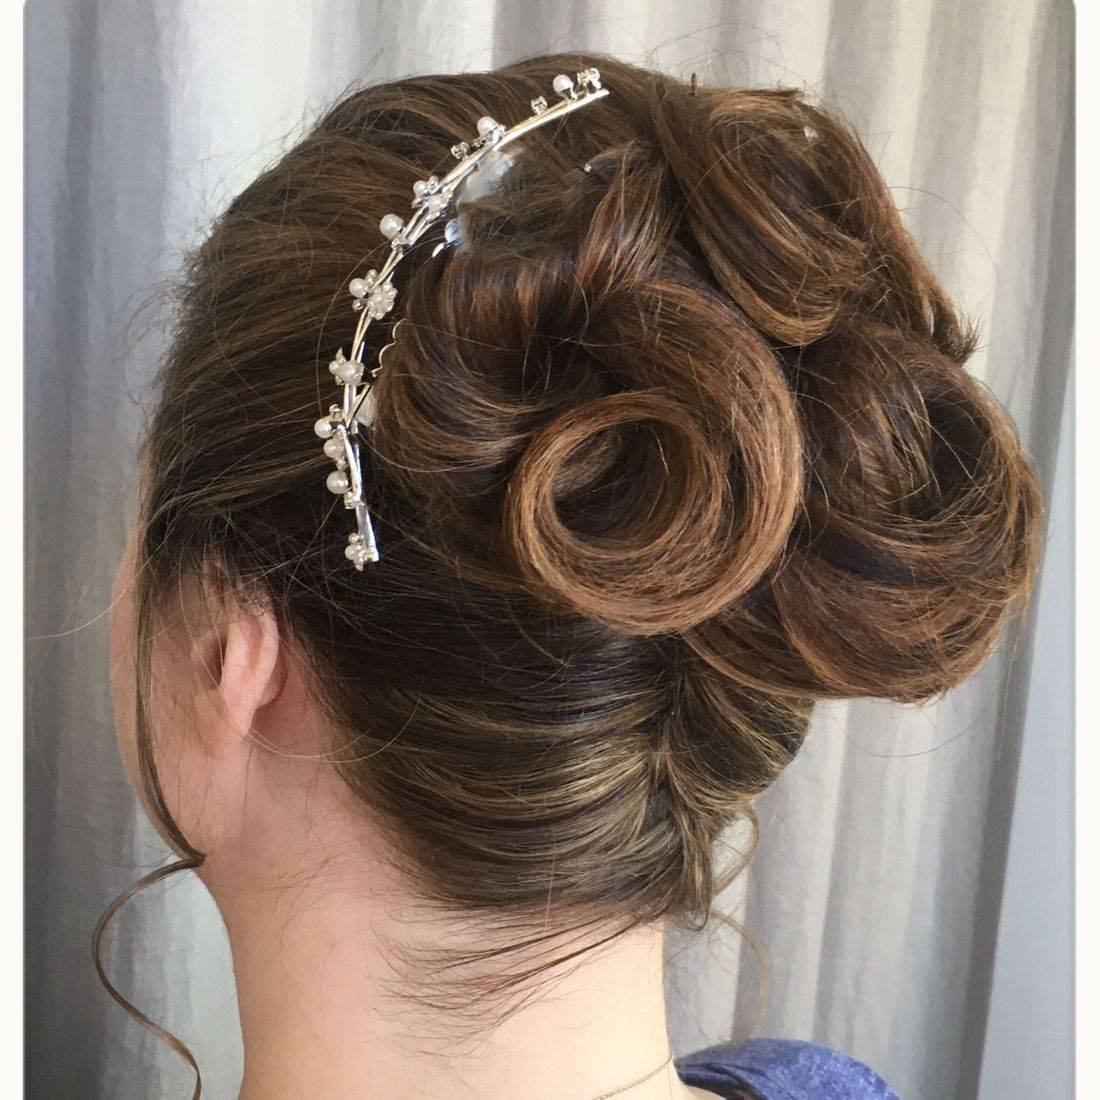 Bridal upstyle with accessory